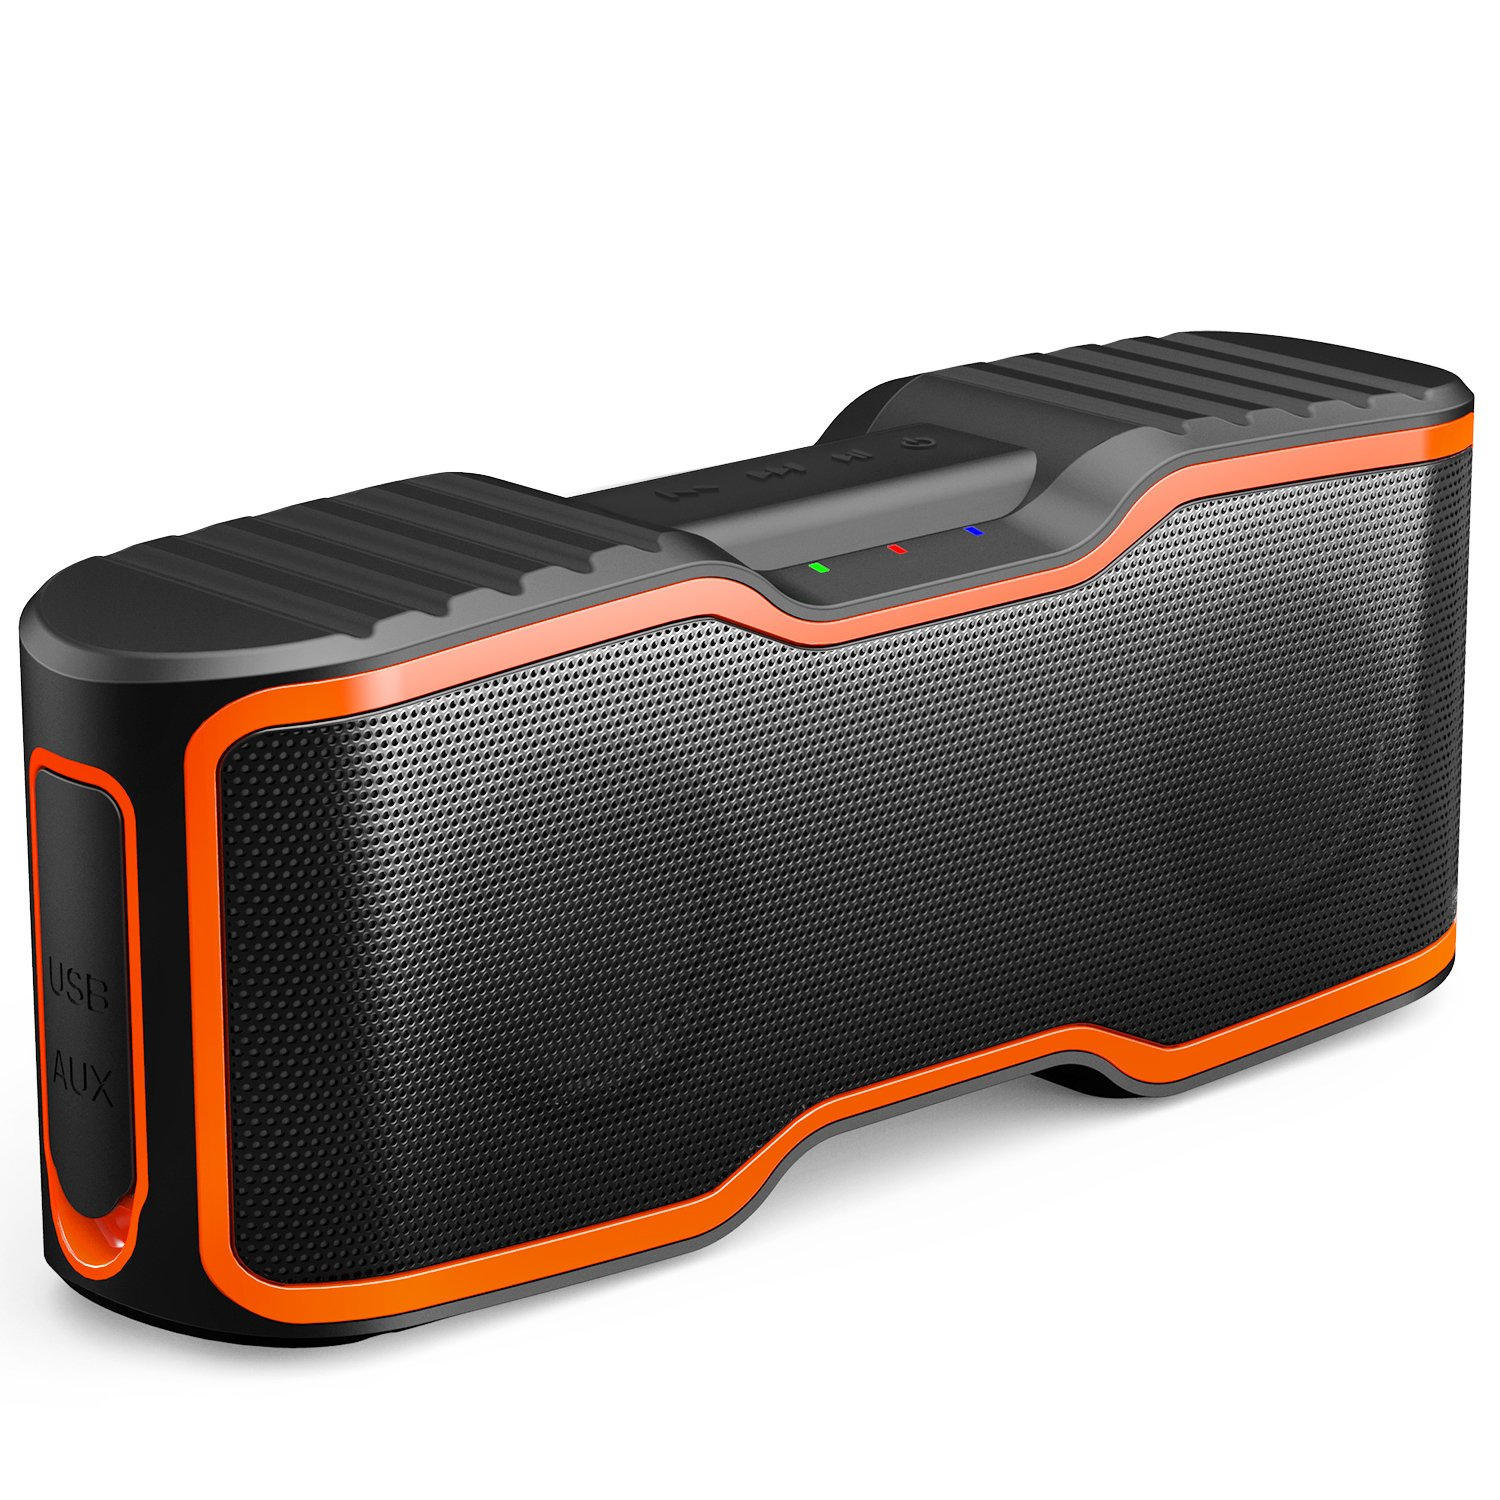 AOMAIS Sport II Portable Wireless Bluetooth Speakers Waterproof IPX7, 15H Playtime, 20W Bass Sound, Stereo Pairing, Durable Design Backyard, Outdoors, Travel, Pool, Home Party (Orange) by AOMAIS